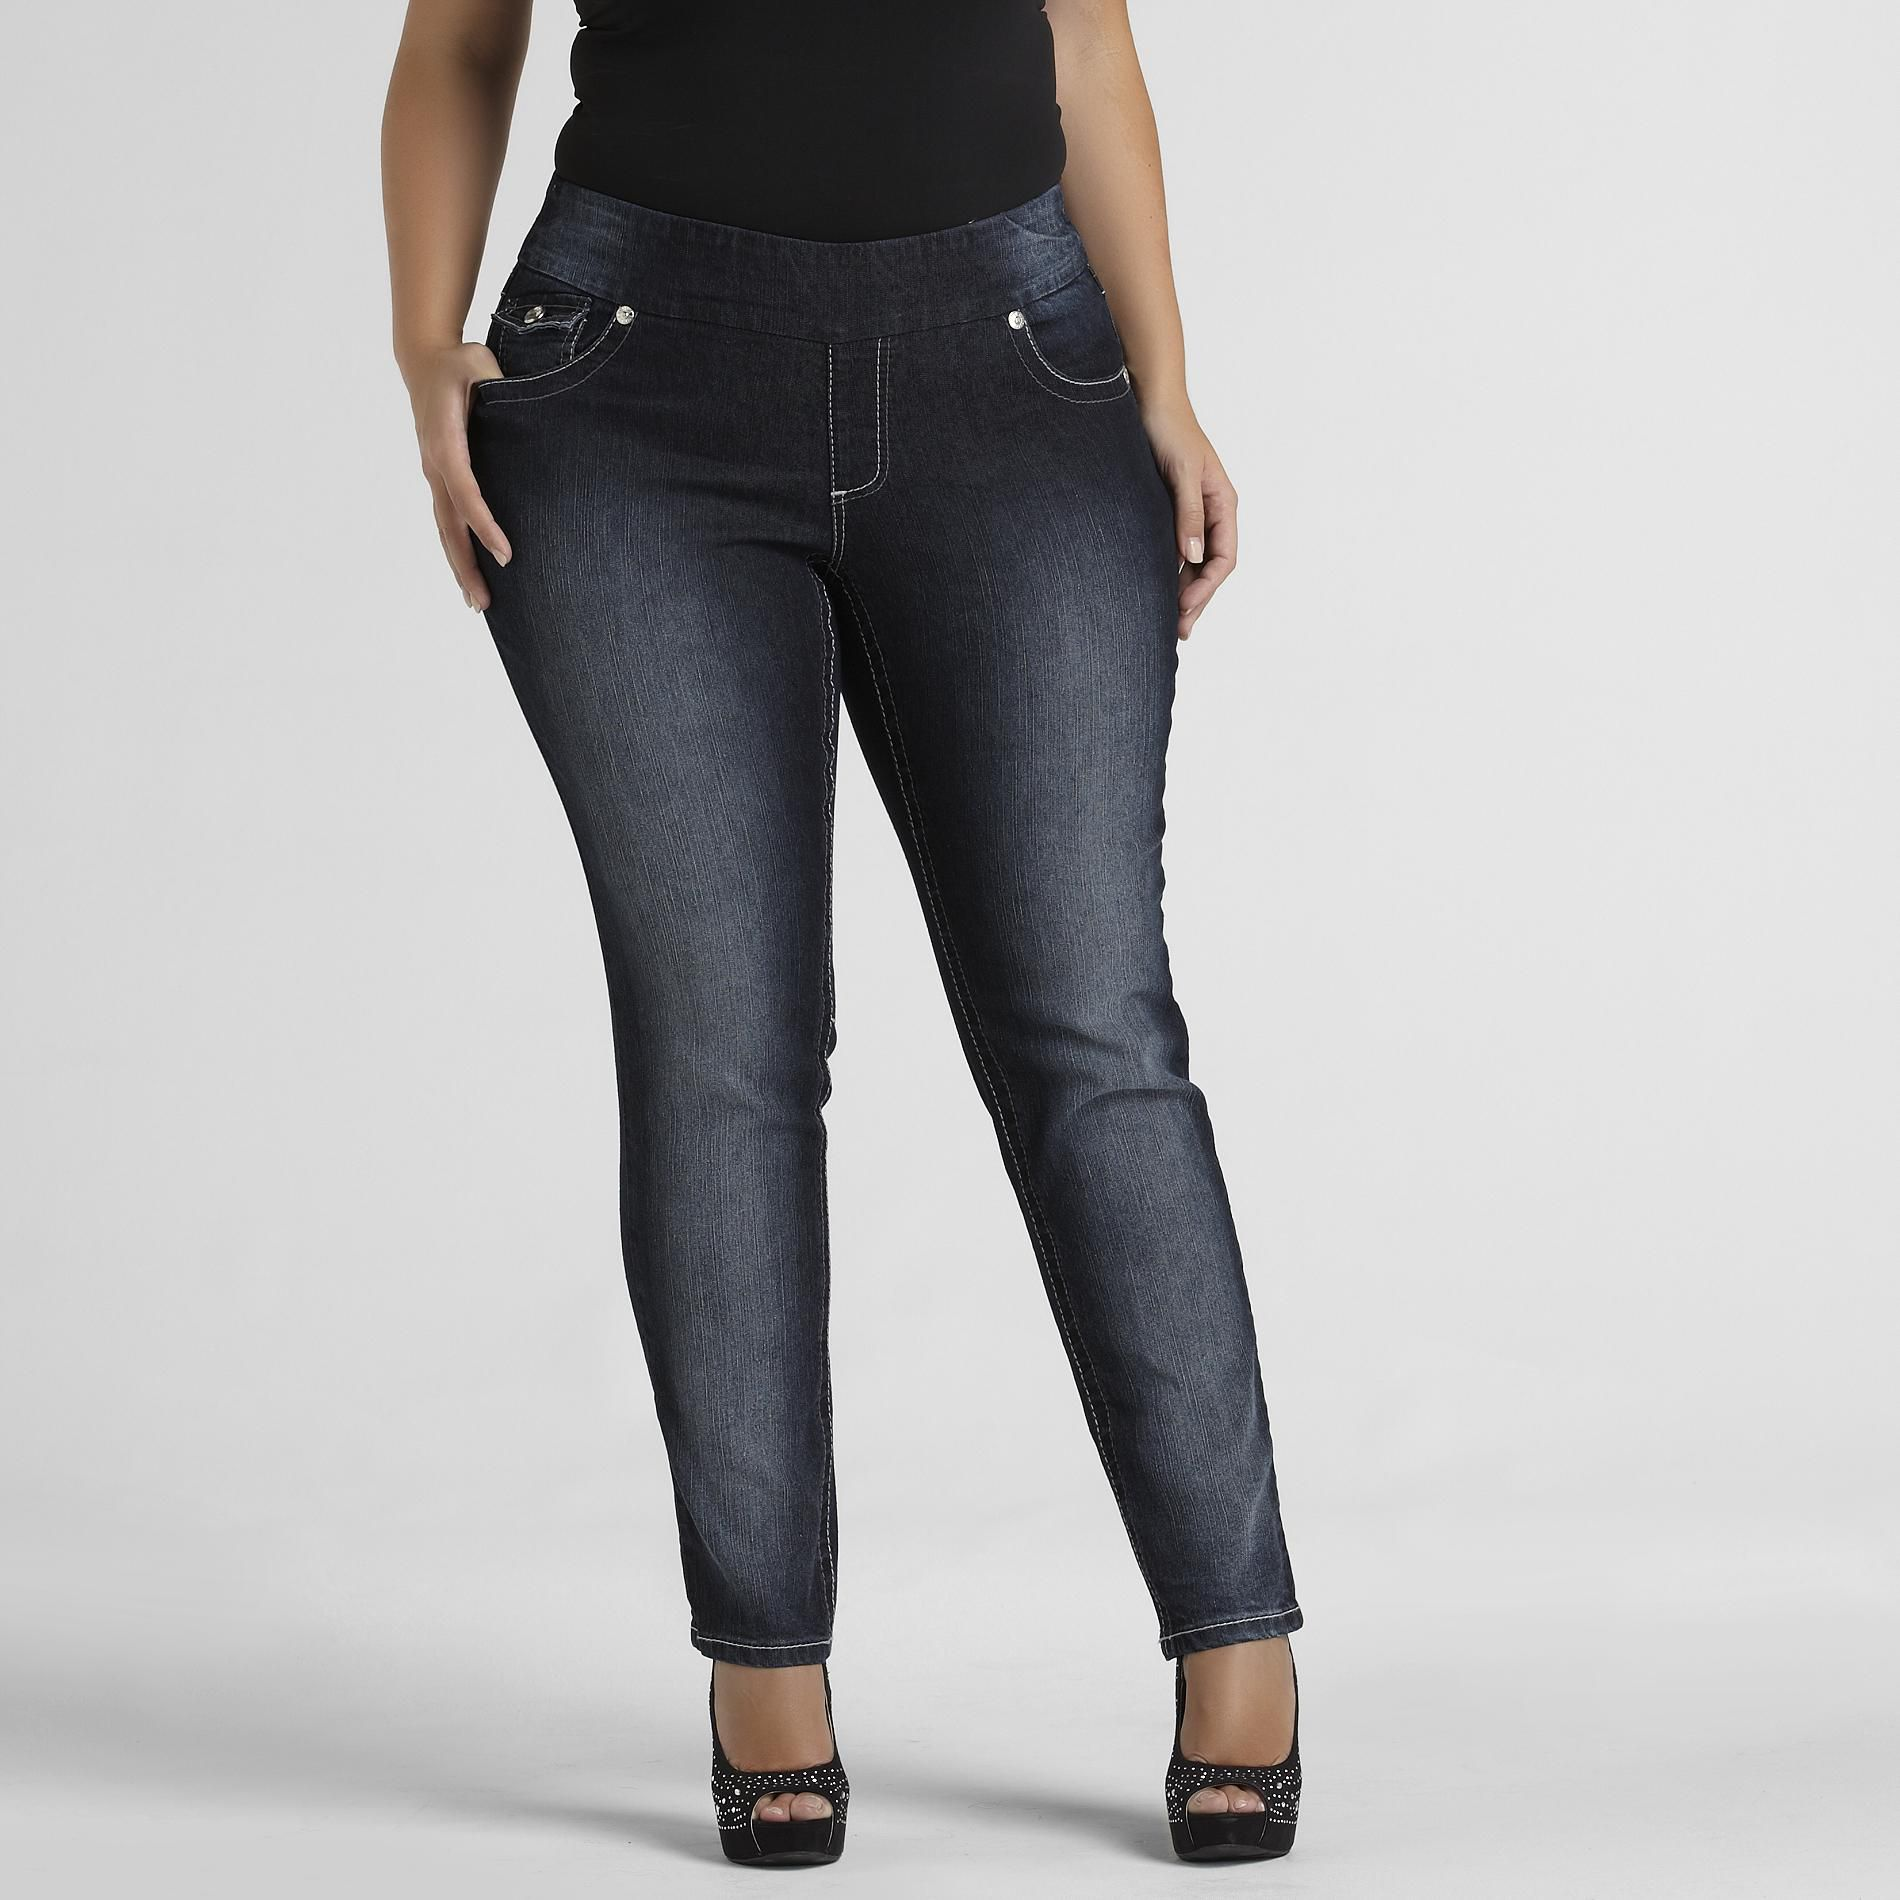 Angels Women's Plus Bling Back Pocket Skinny Jeans at Sears.com